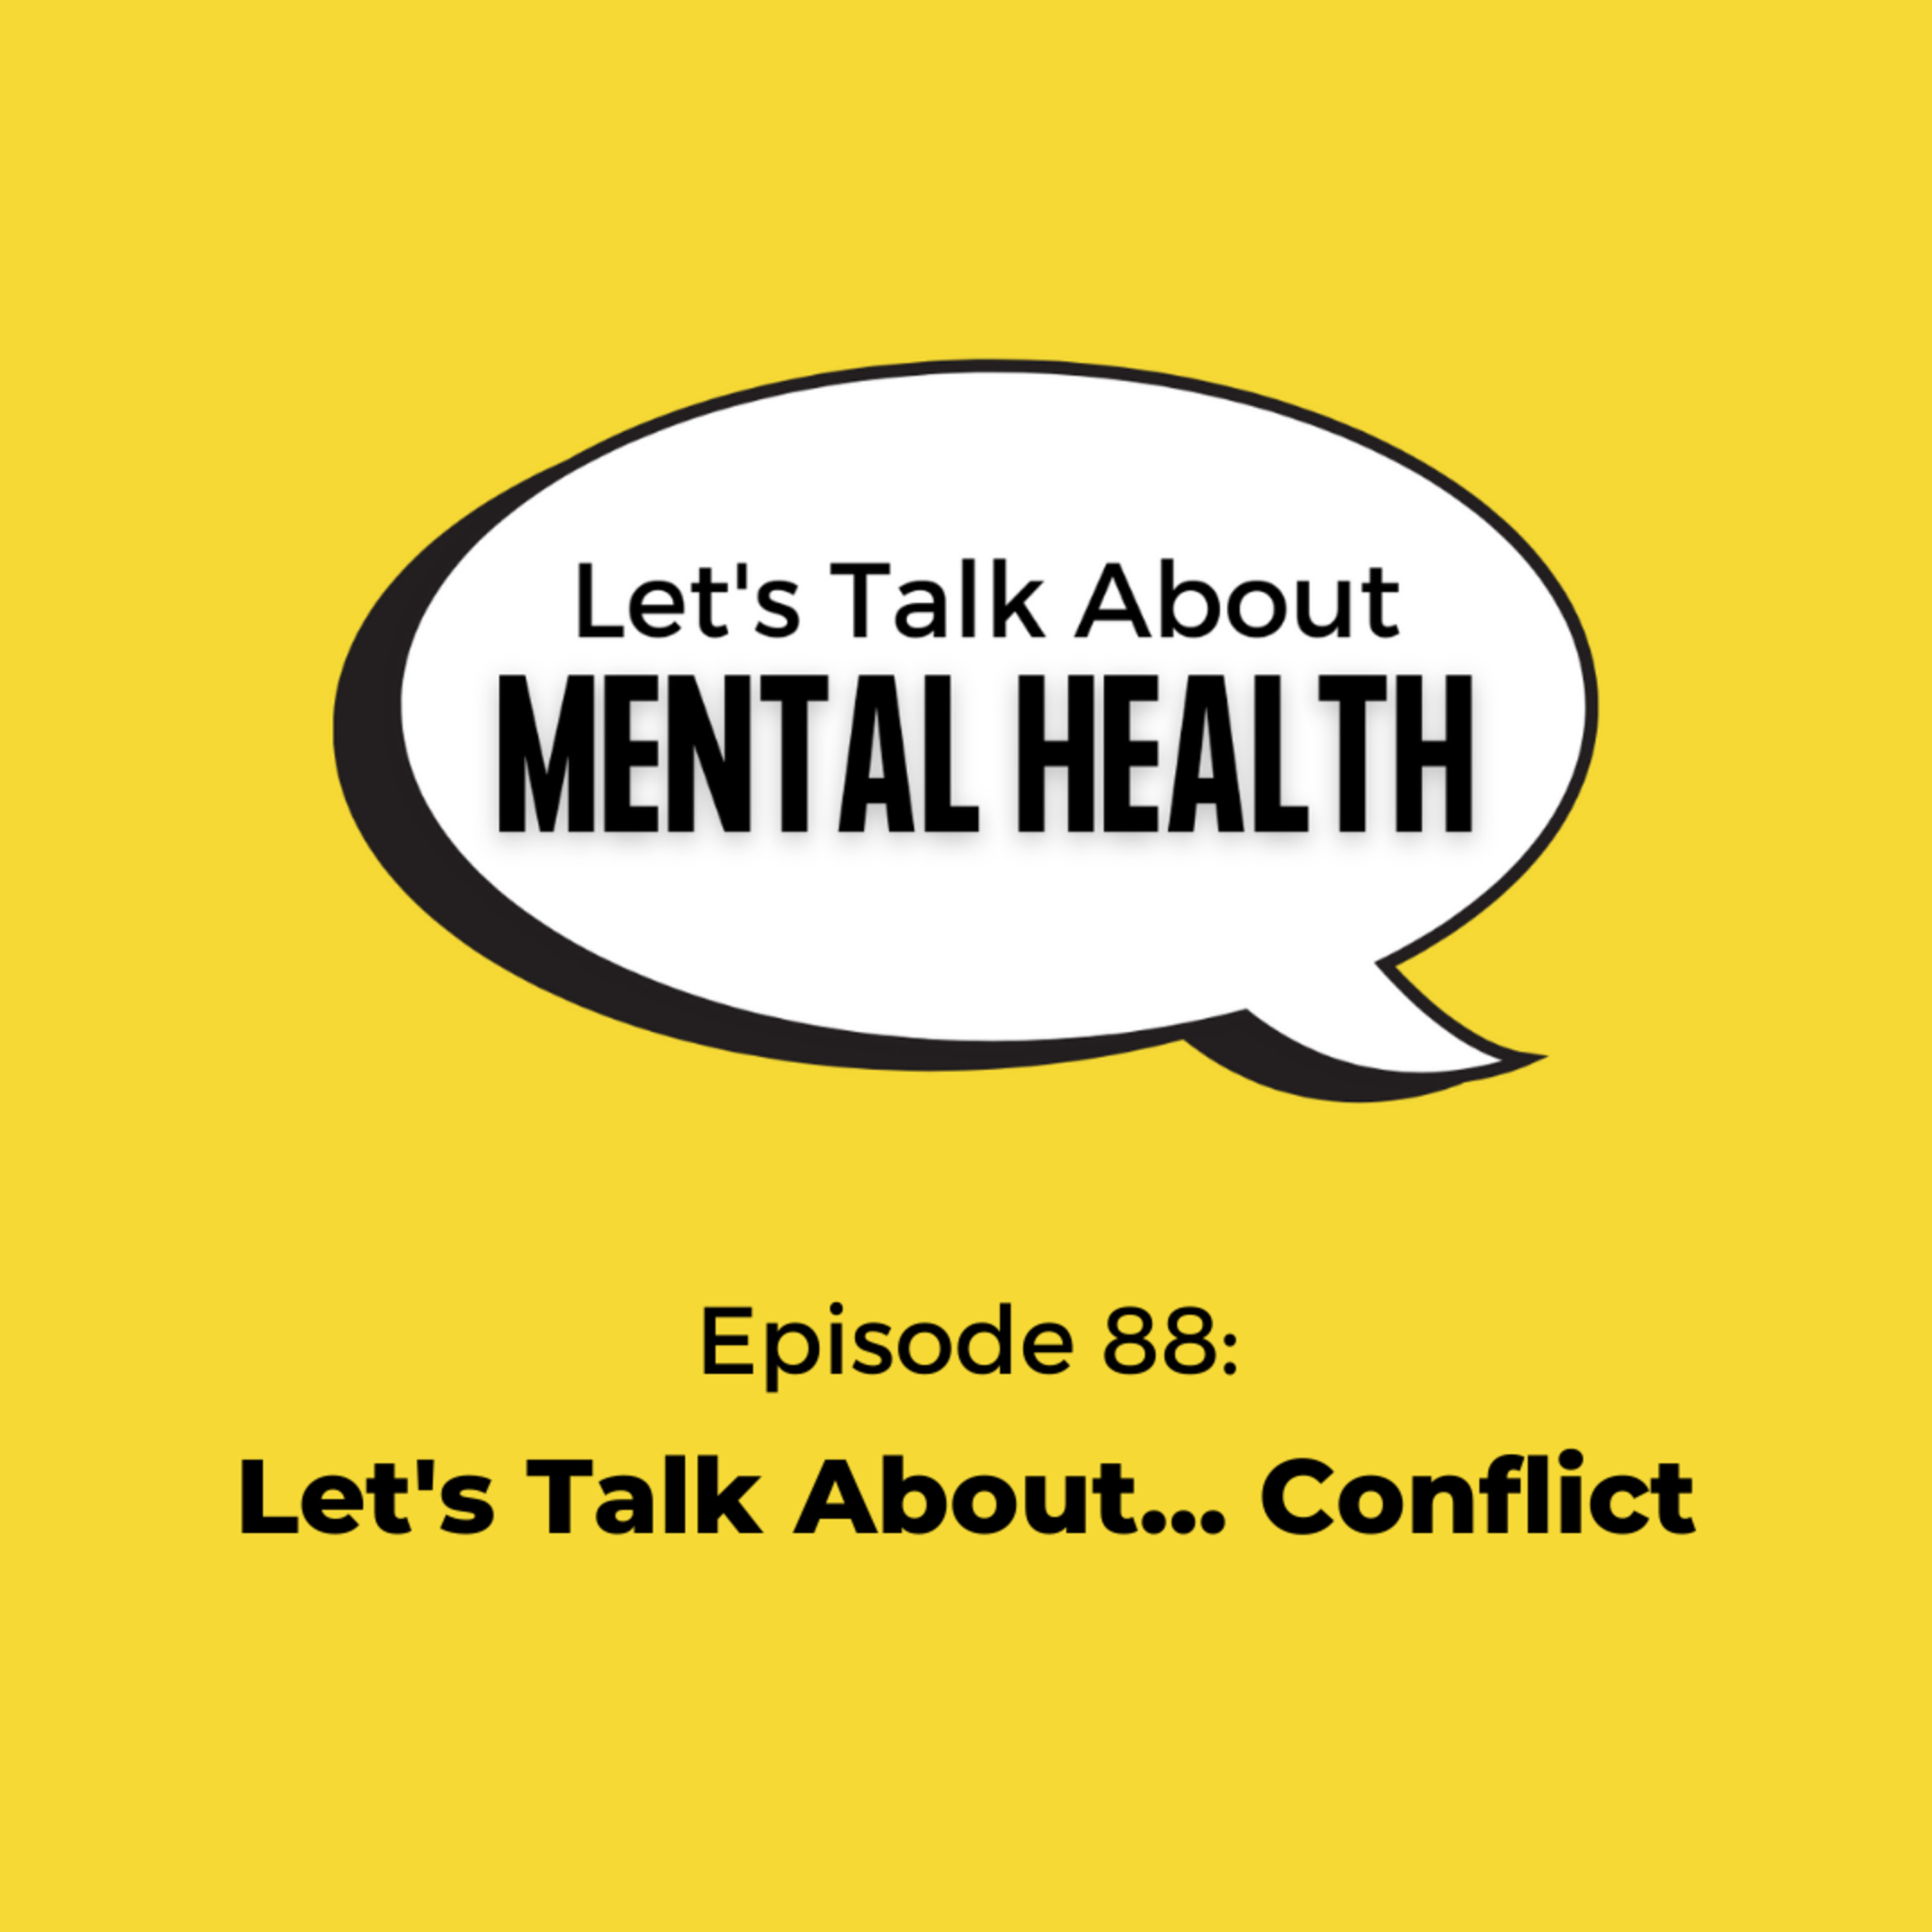 Let's Talk About Mental Health - Let's Talk About... Conflict